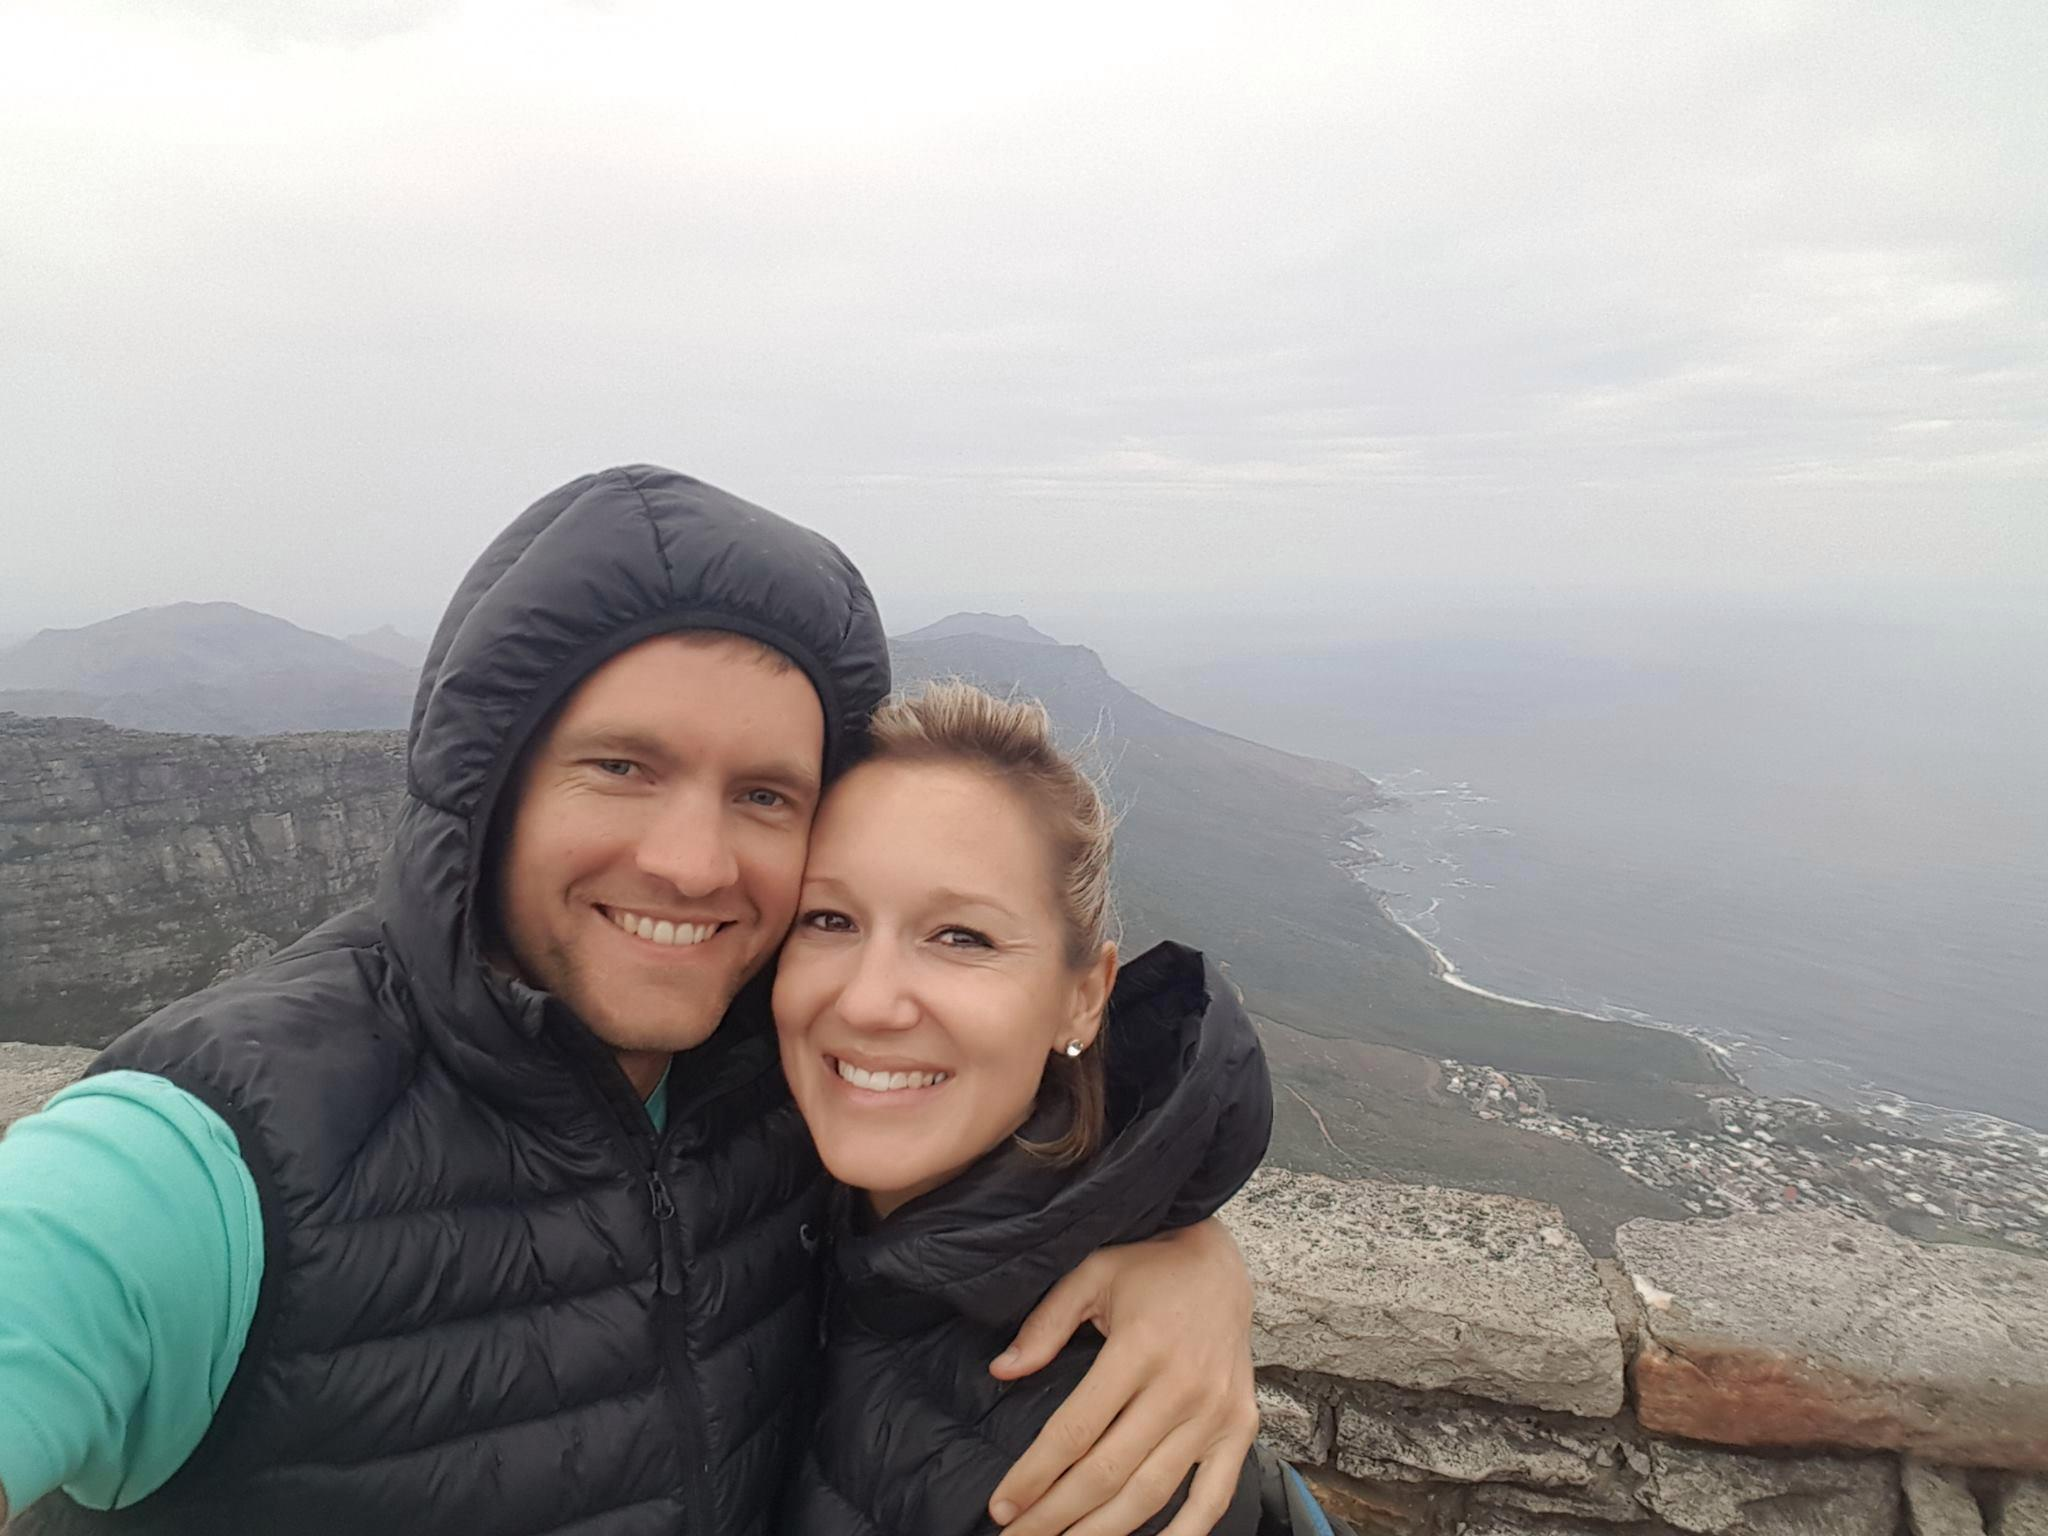 Newlywed plunges 500ft to her death from clifftop while jumping for photo taken by husband on 31st birthday